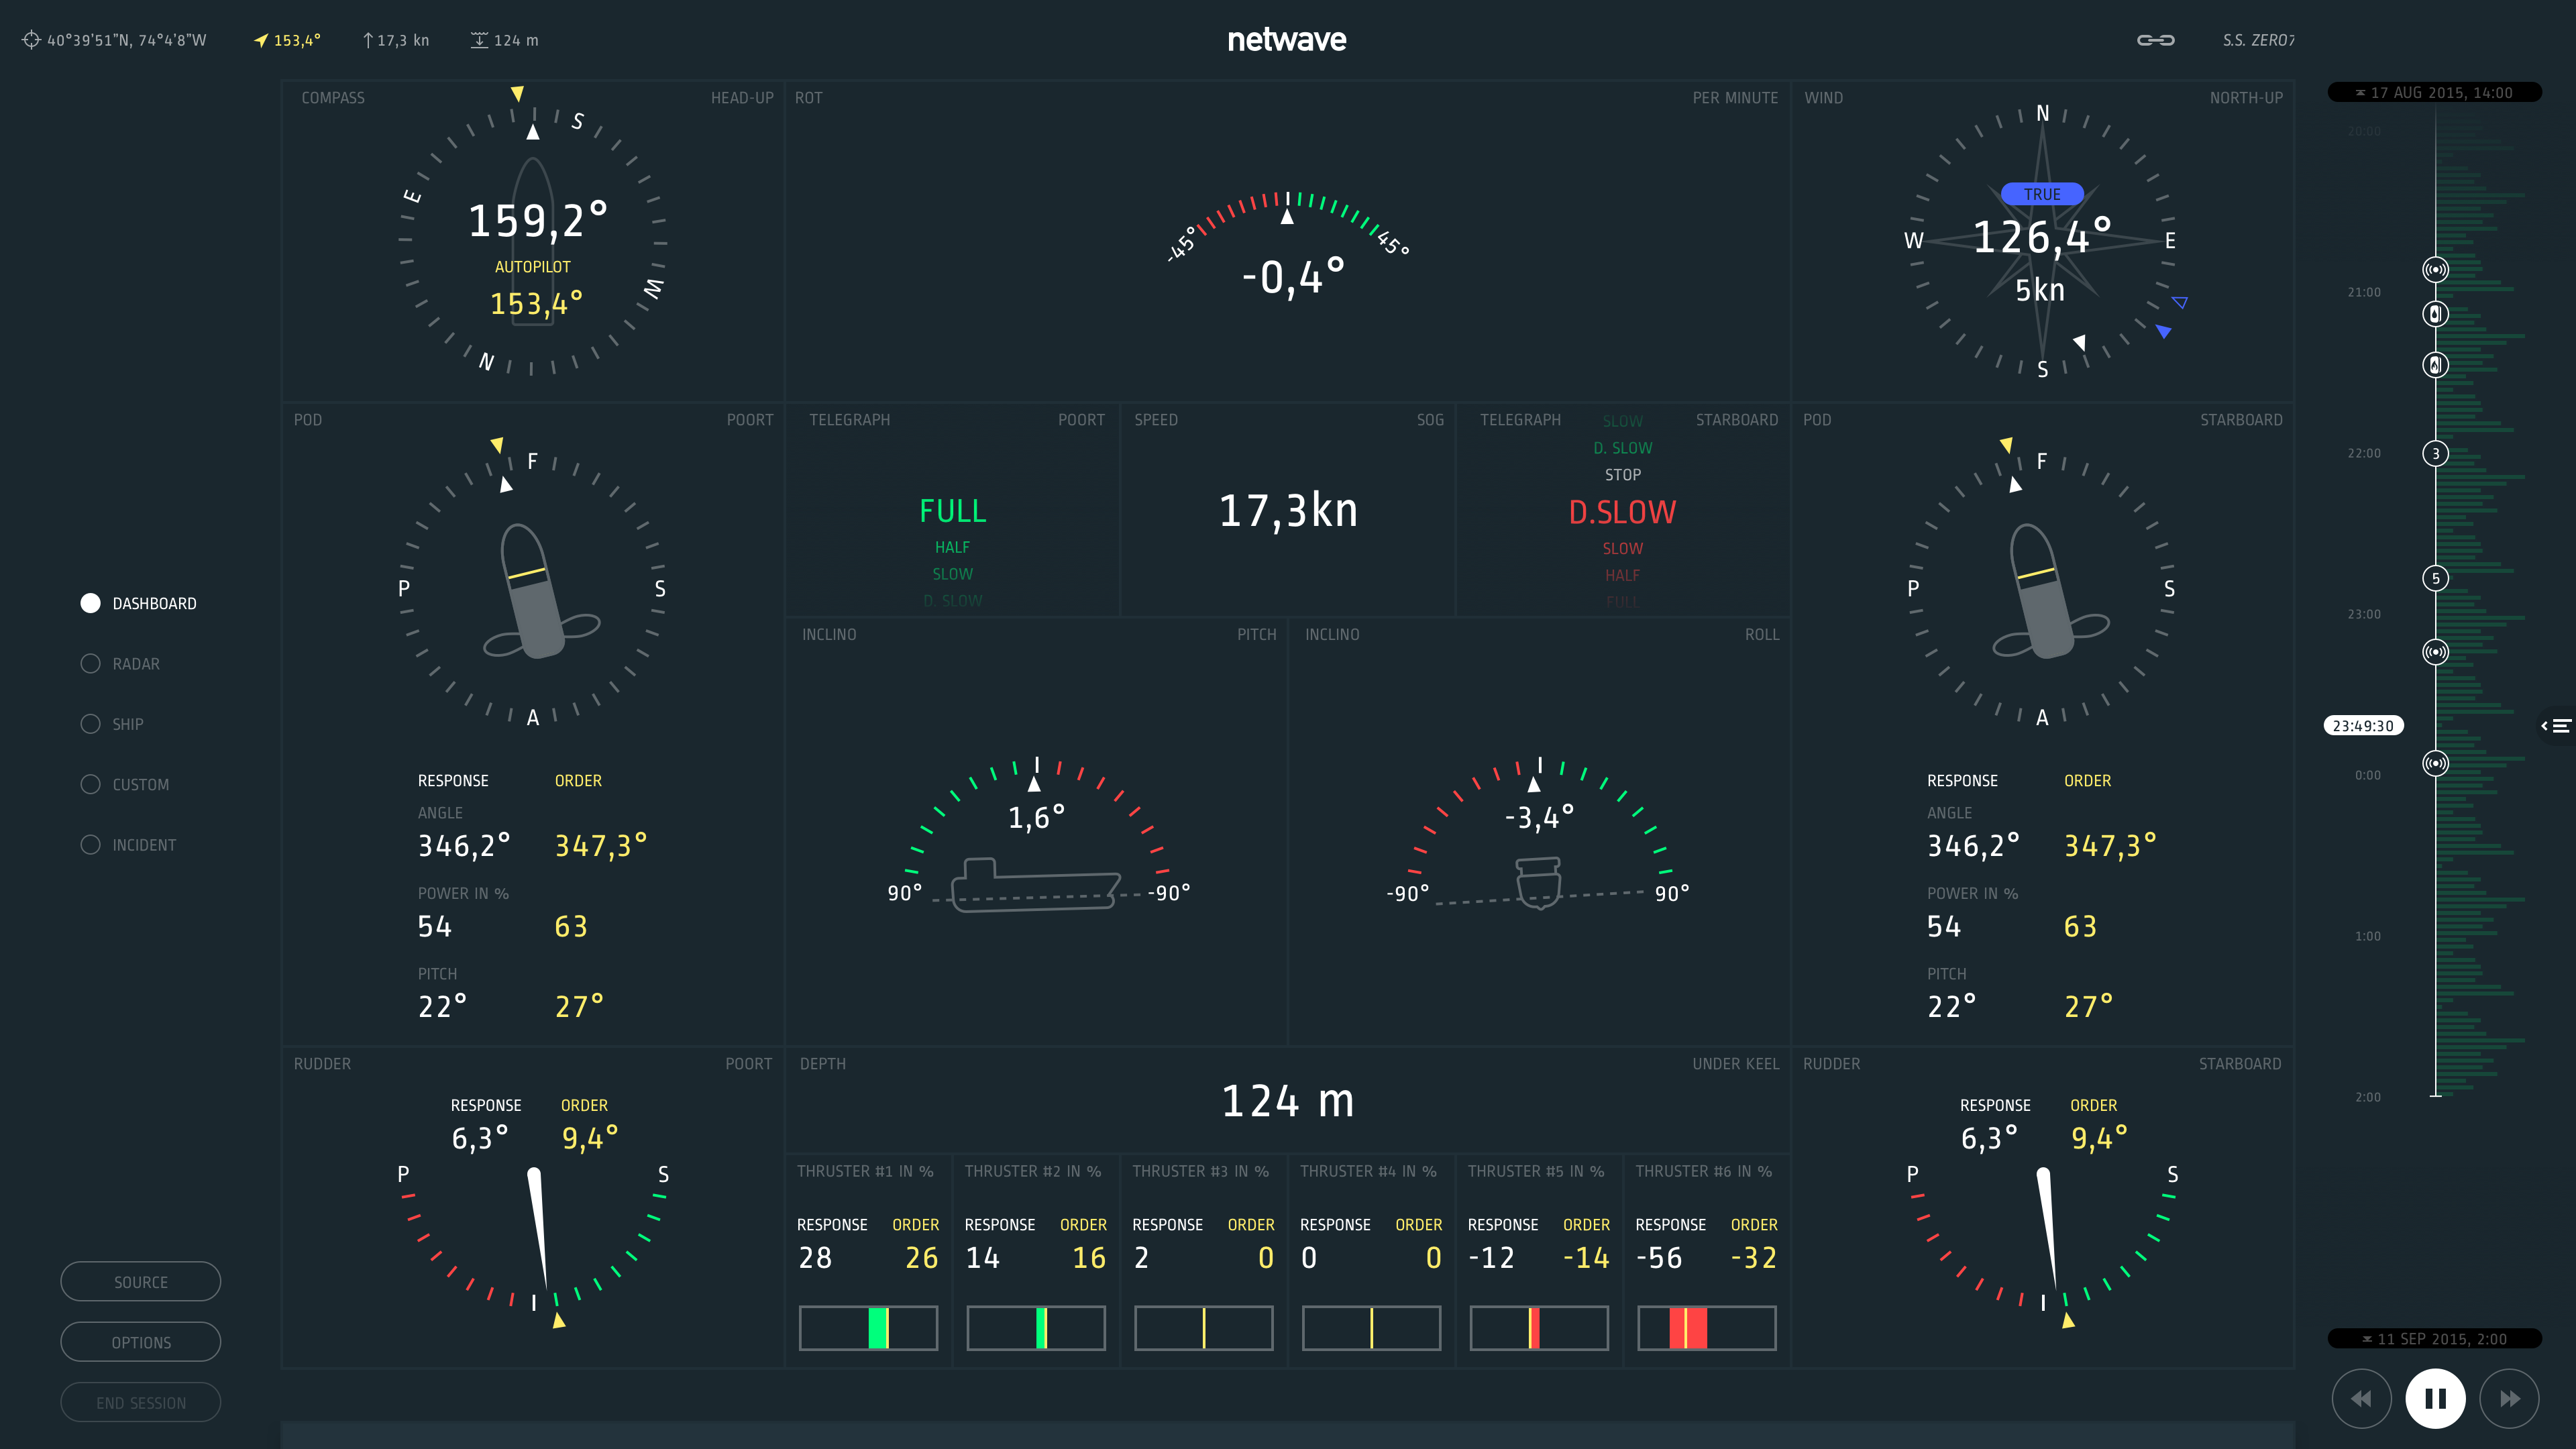 netwave-dashboard